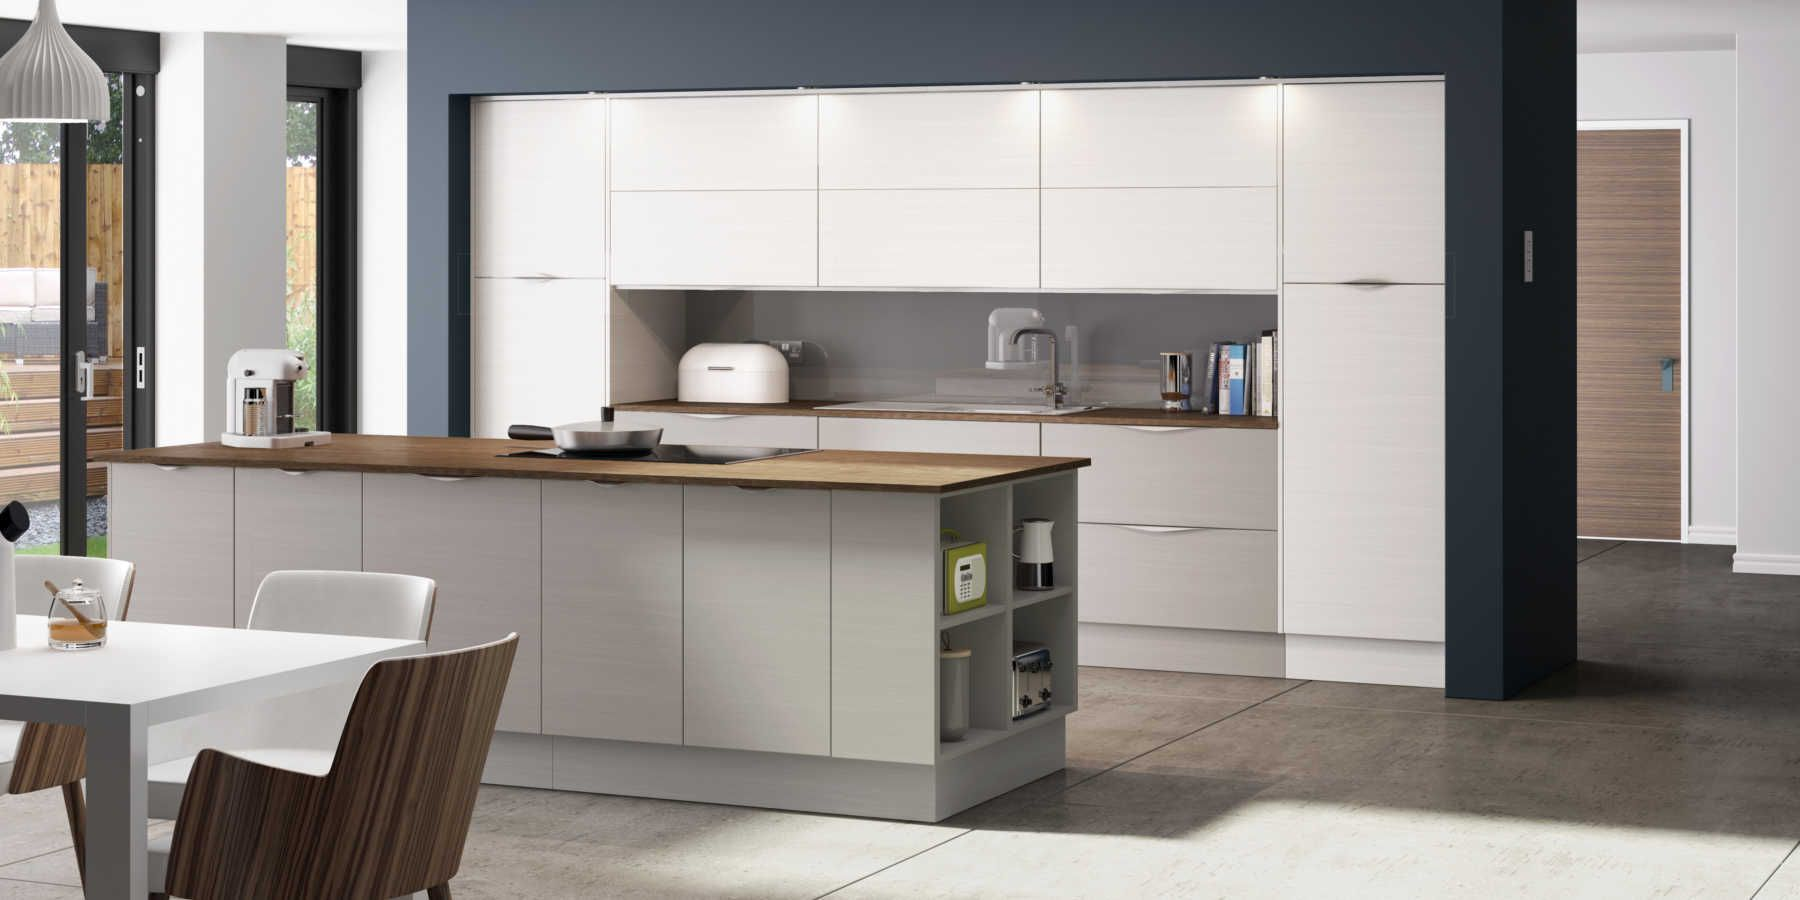 Küchenbilder Modern Symphony Group Experts In Fitted Kitchens Bedrooms And